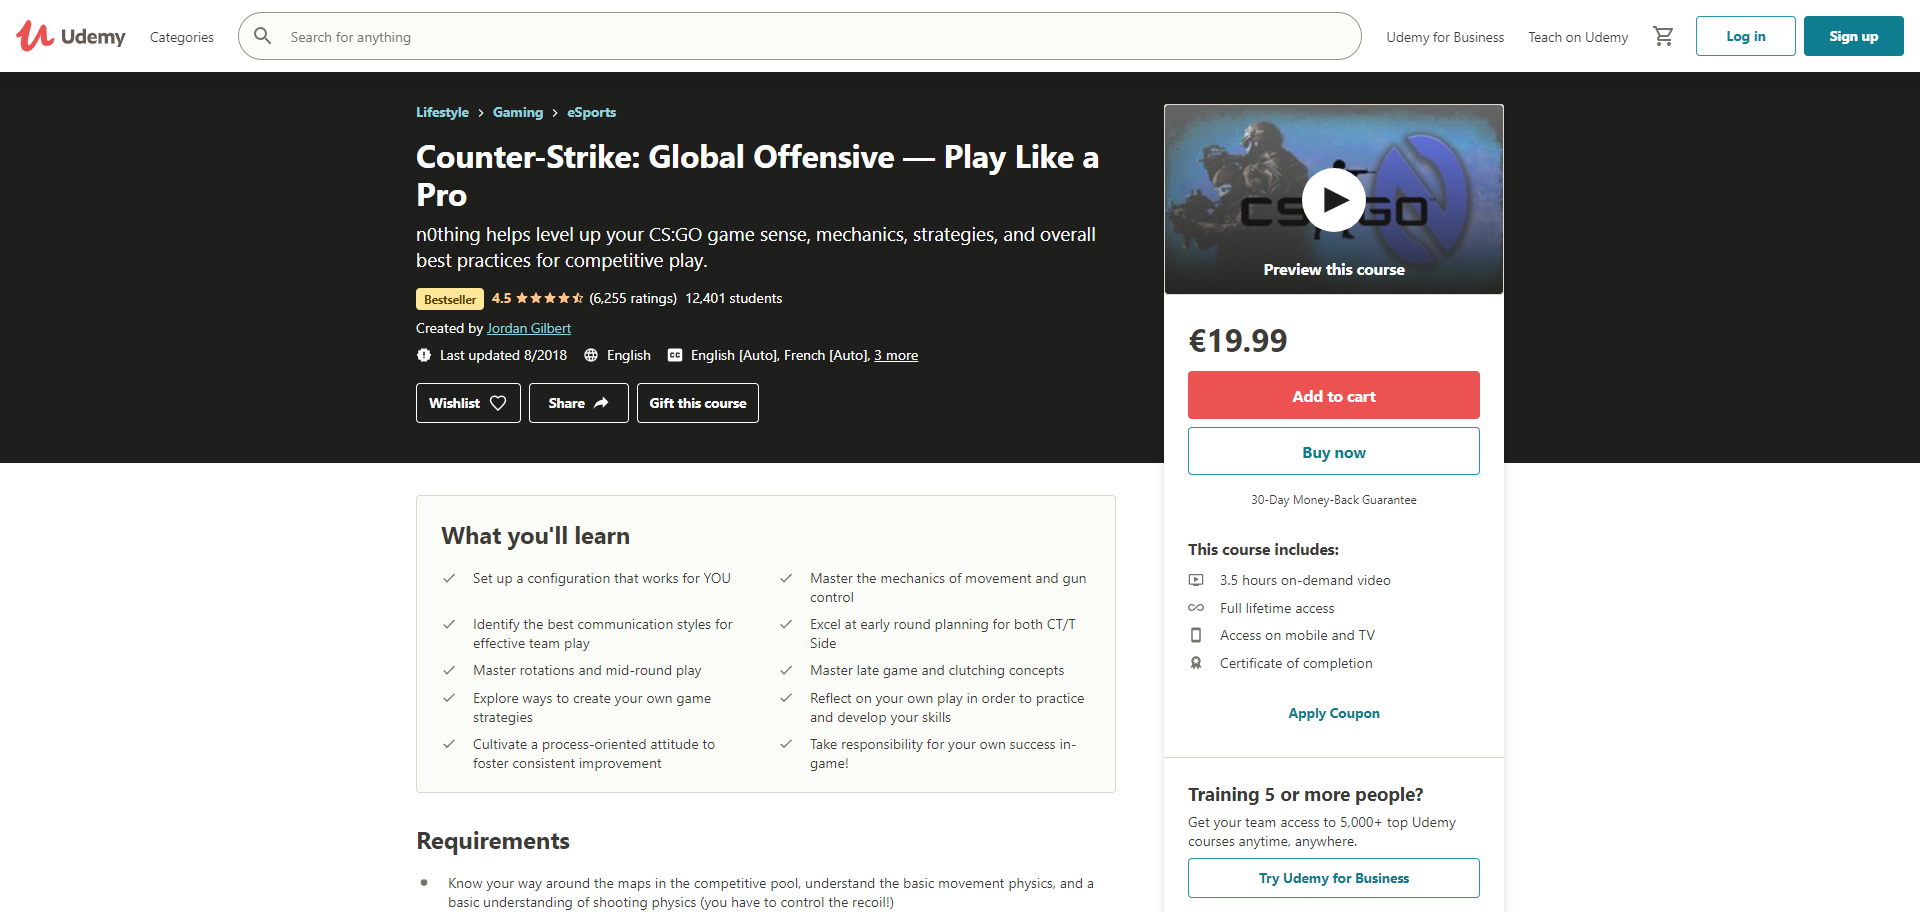 n0thing Udemy CSGO Course